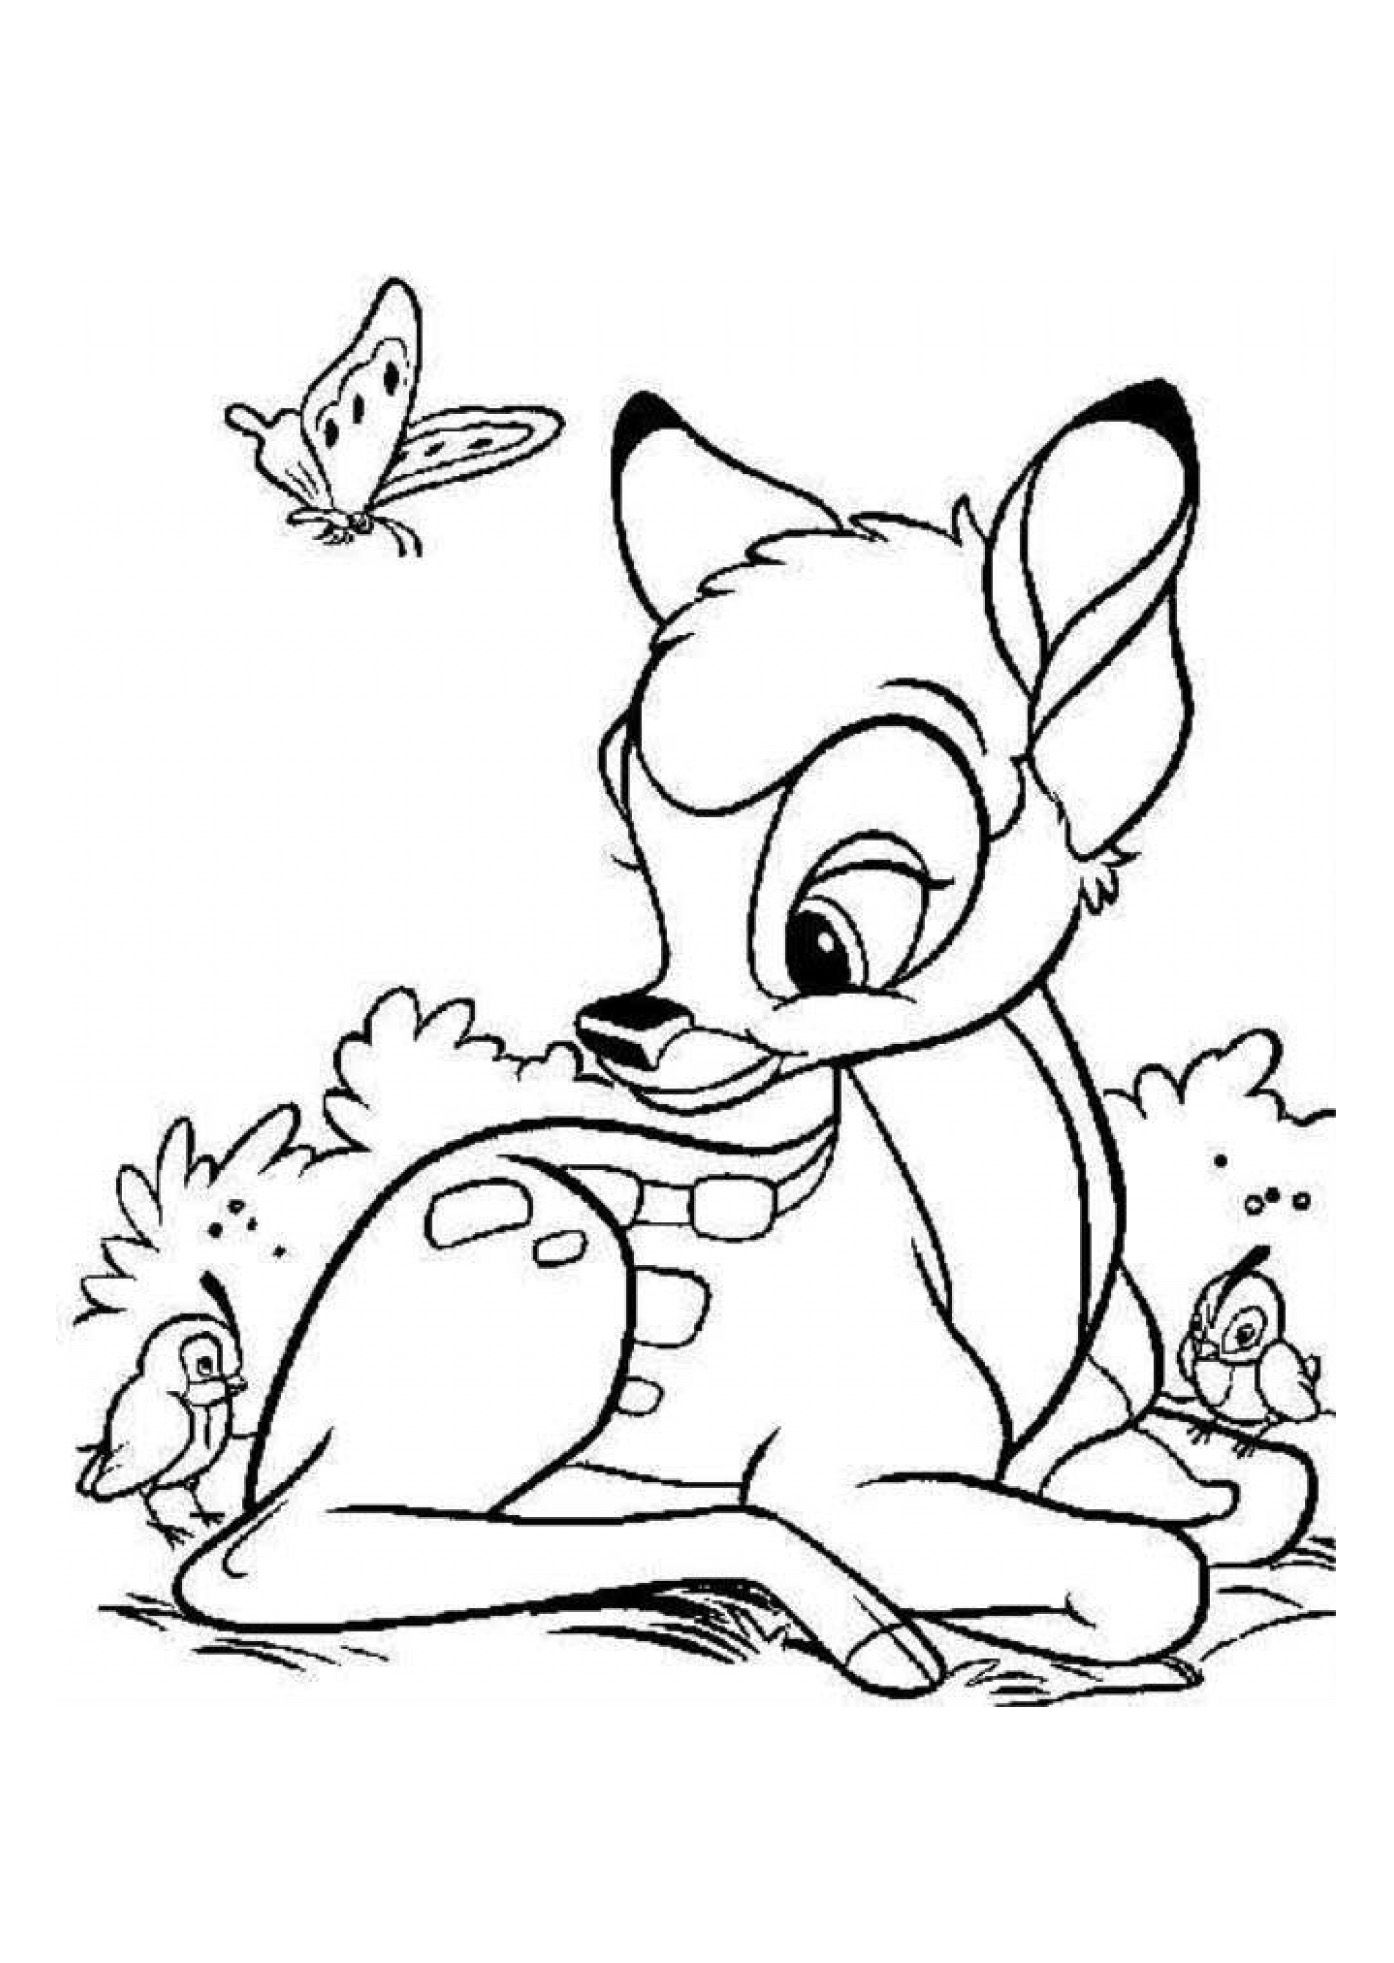 Bambi Coloring Pages - Educational Fun Kids Coloring Pages and ... | 1963x1394